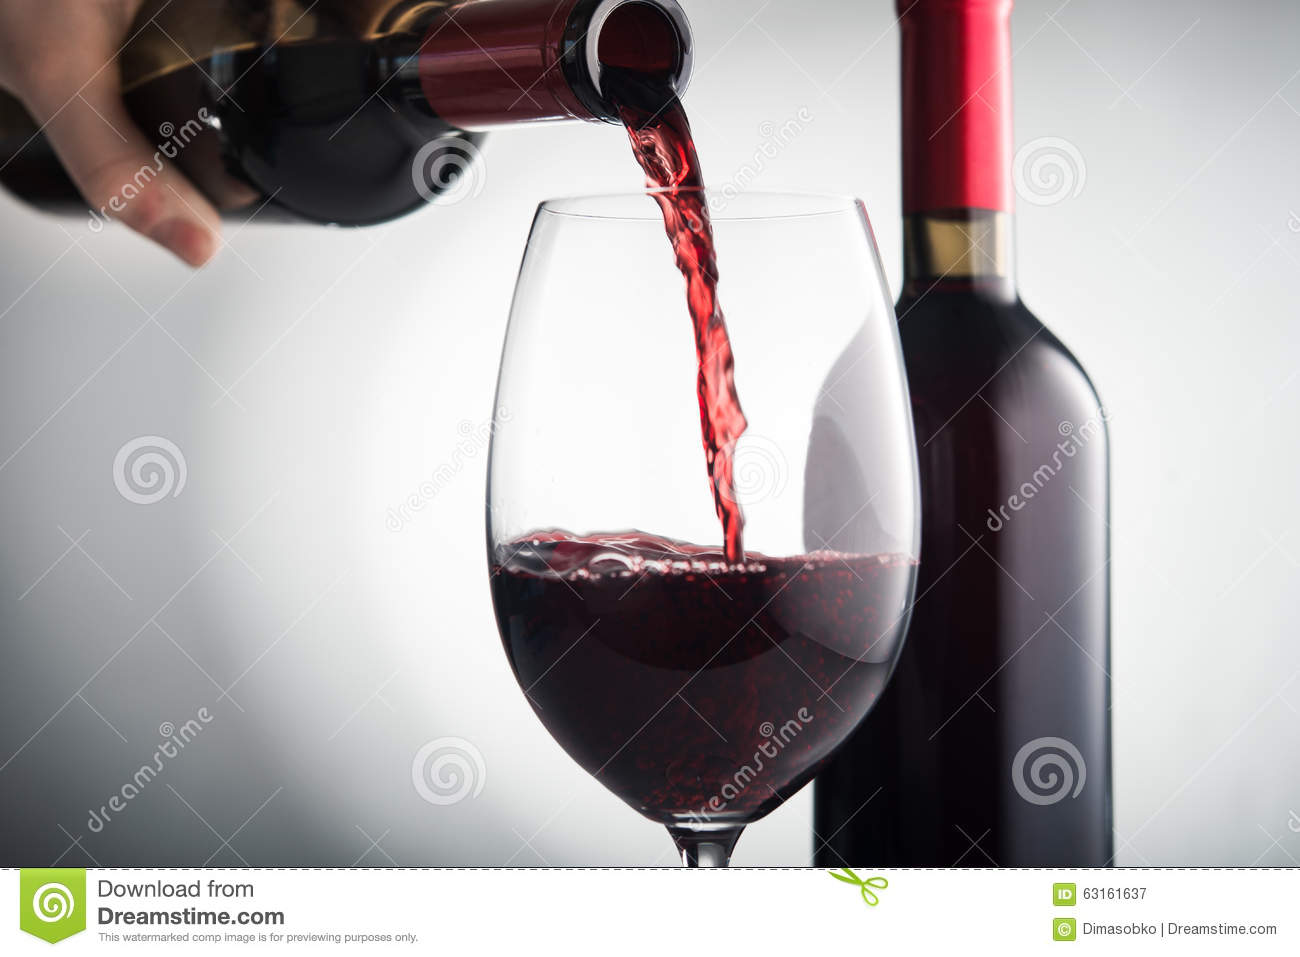 Pour red wine into glass